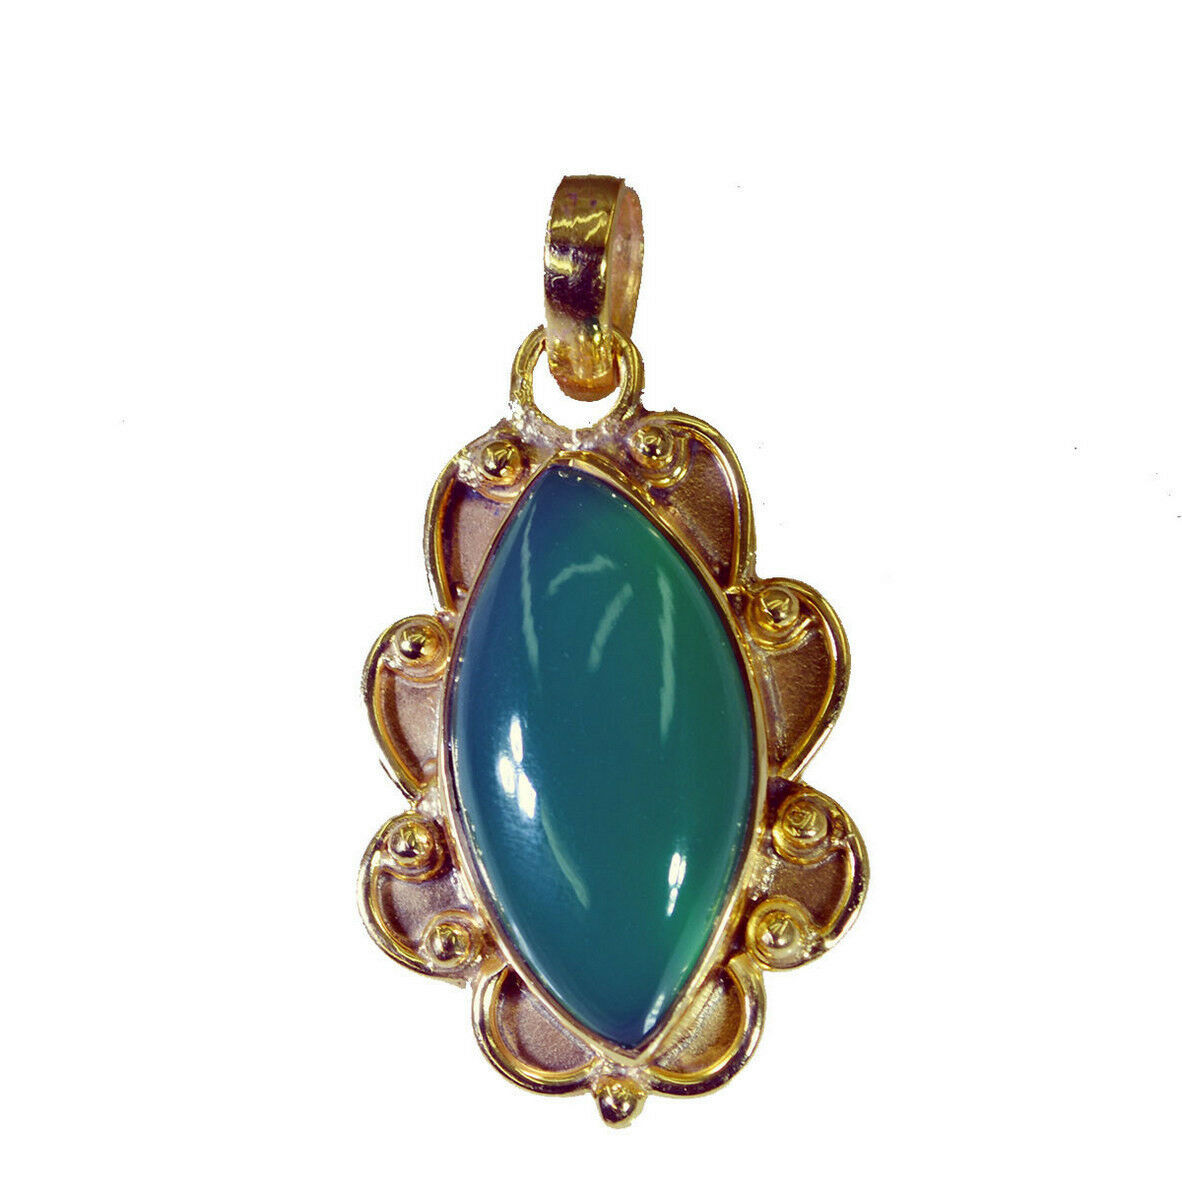 Primary image for fine Green Onyx Gold Plated Green Pendant Natural jaipur US gift